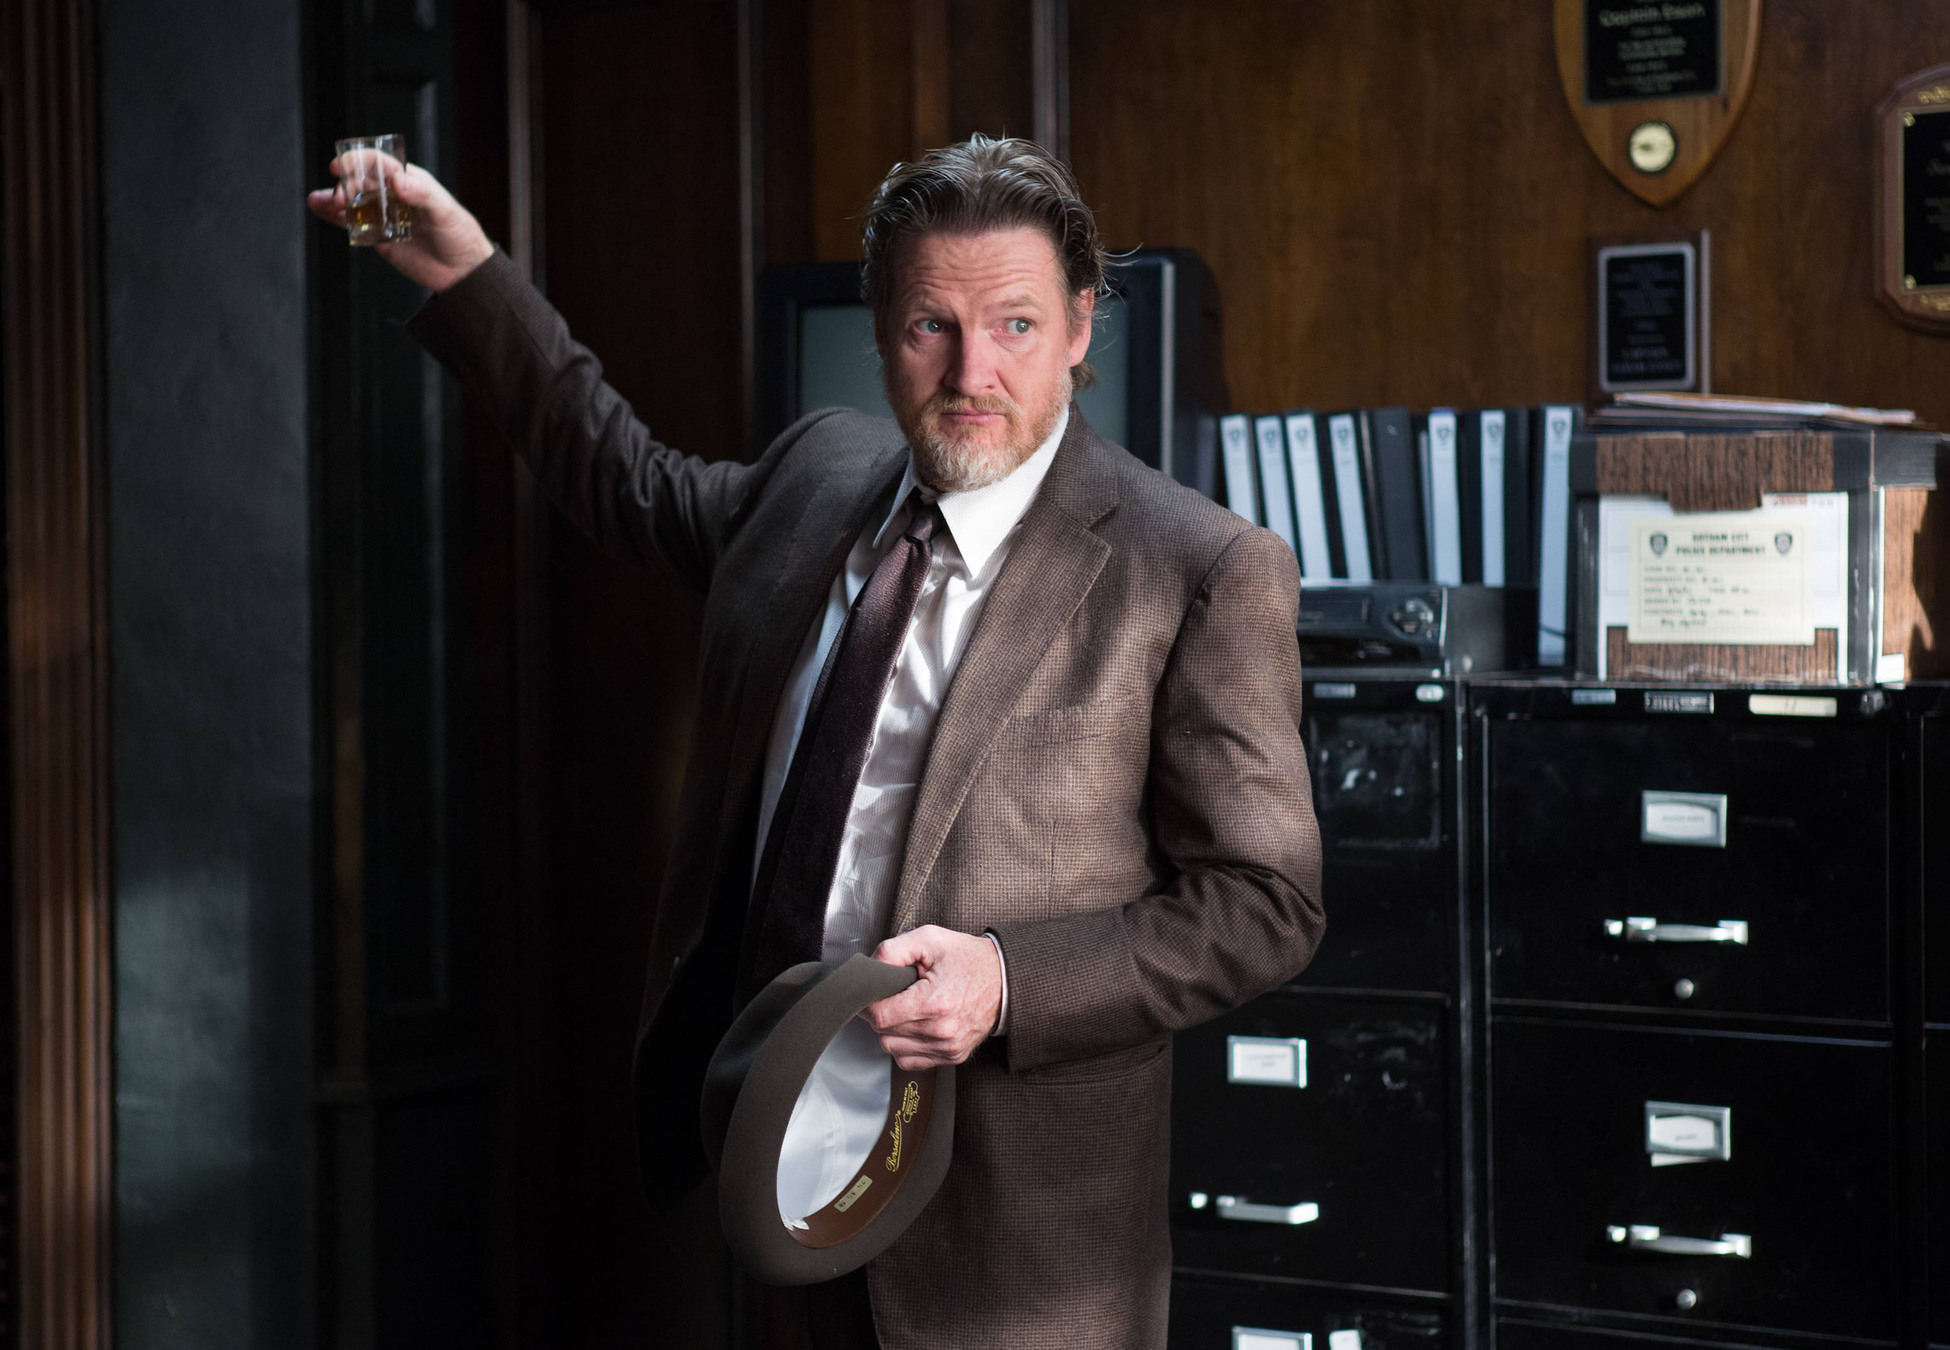 """GOTHAM: Detective Bullock (Donal Logue) celebrates a victory in the """"Selina Kyle"""" episode of GOTHAM airing Monday, Sept. 29 (8:00-9:00 PM ET/PT) on FOX. ©2014 Fox Broadcasting Co. Cr: Jessica Miglio/FOX"""